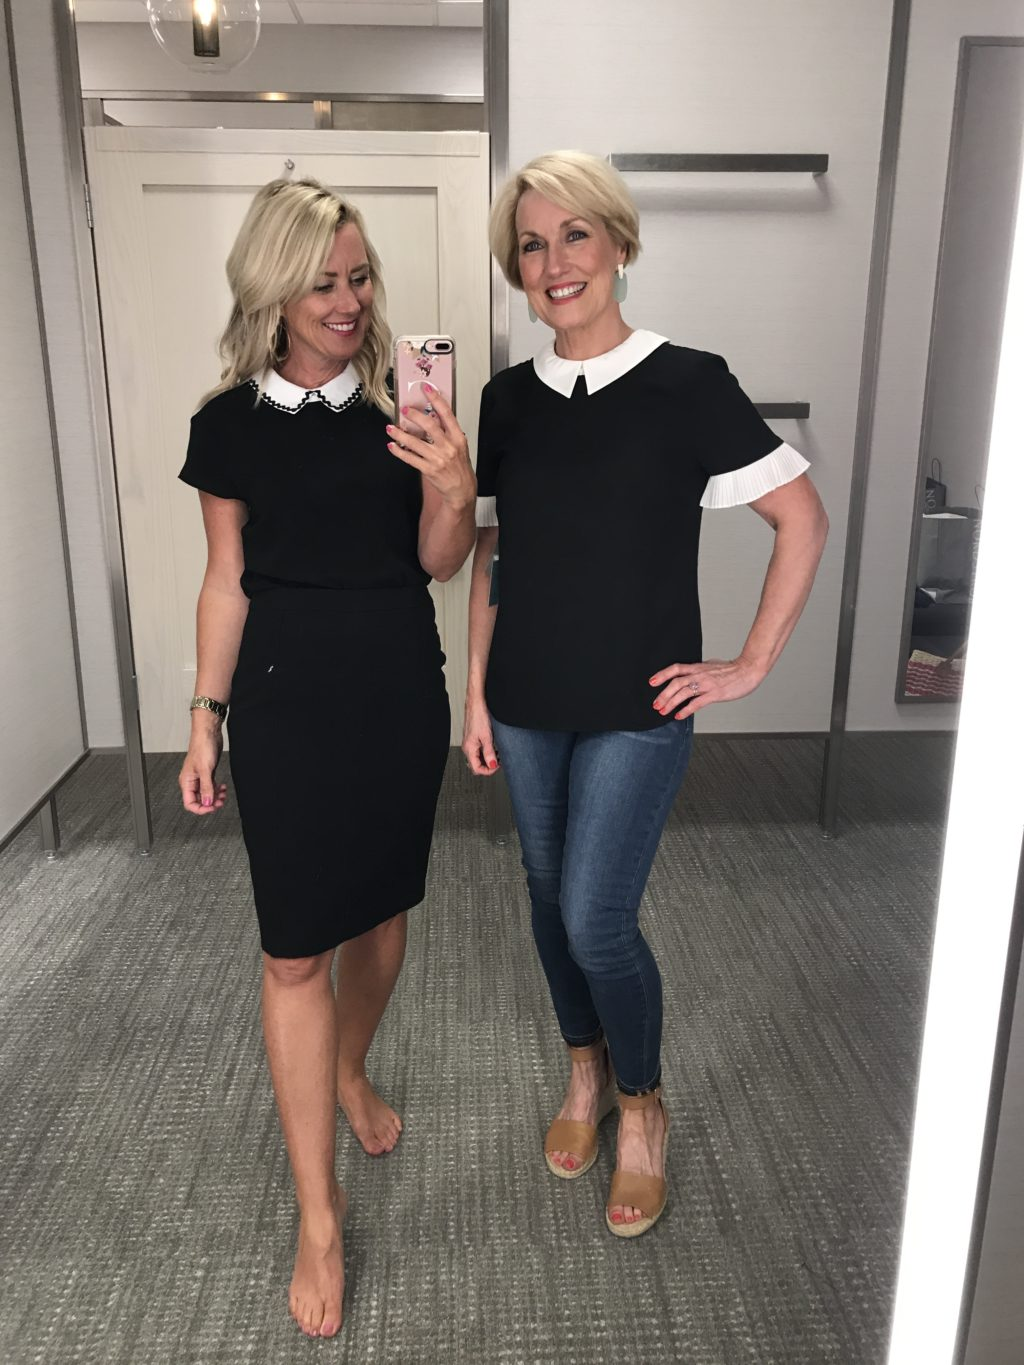 cece black and white collar tops nordstrom anniversary sale